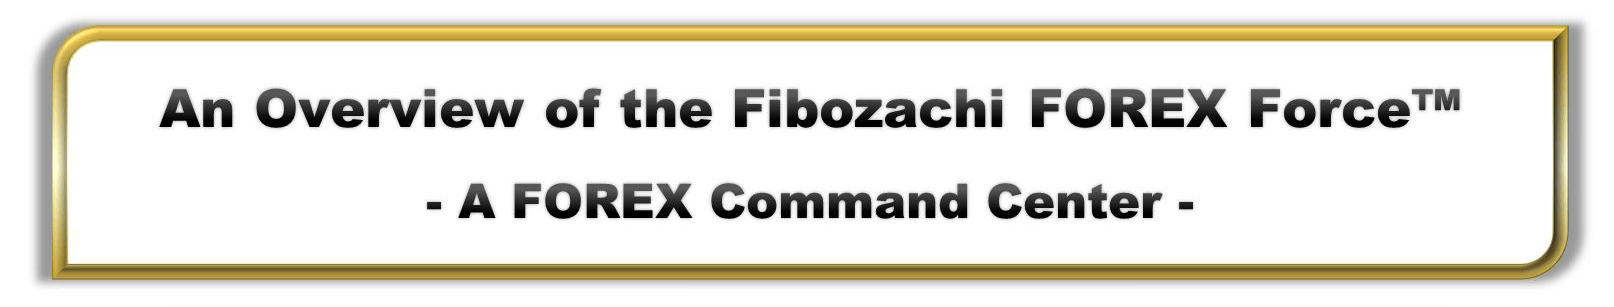 Fibozachi Forex Force Overview